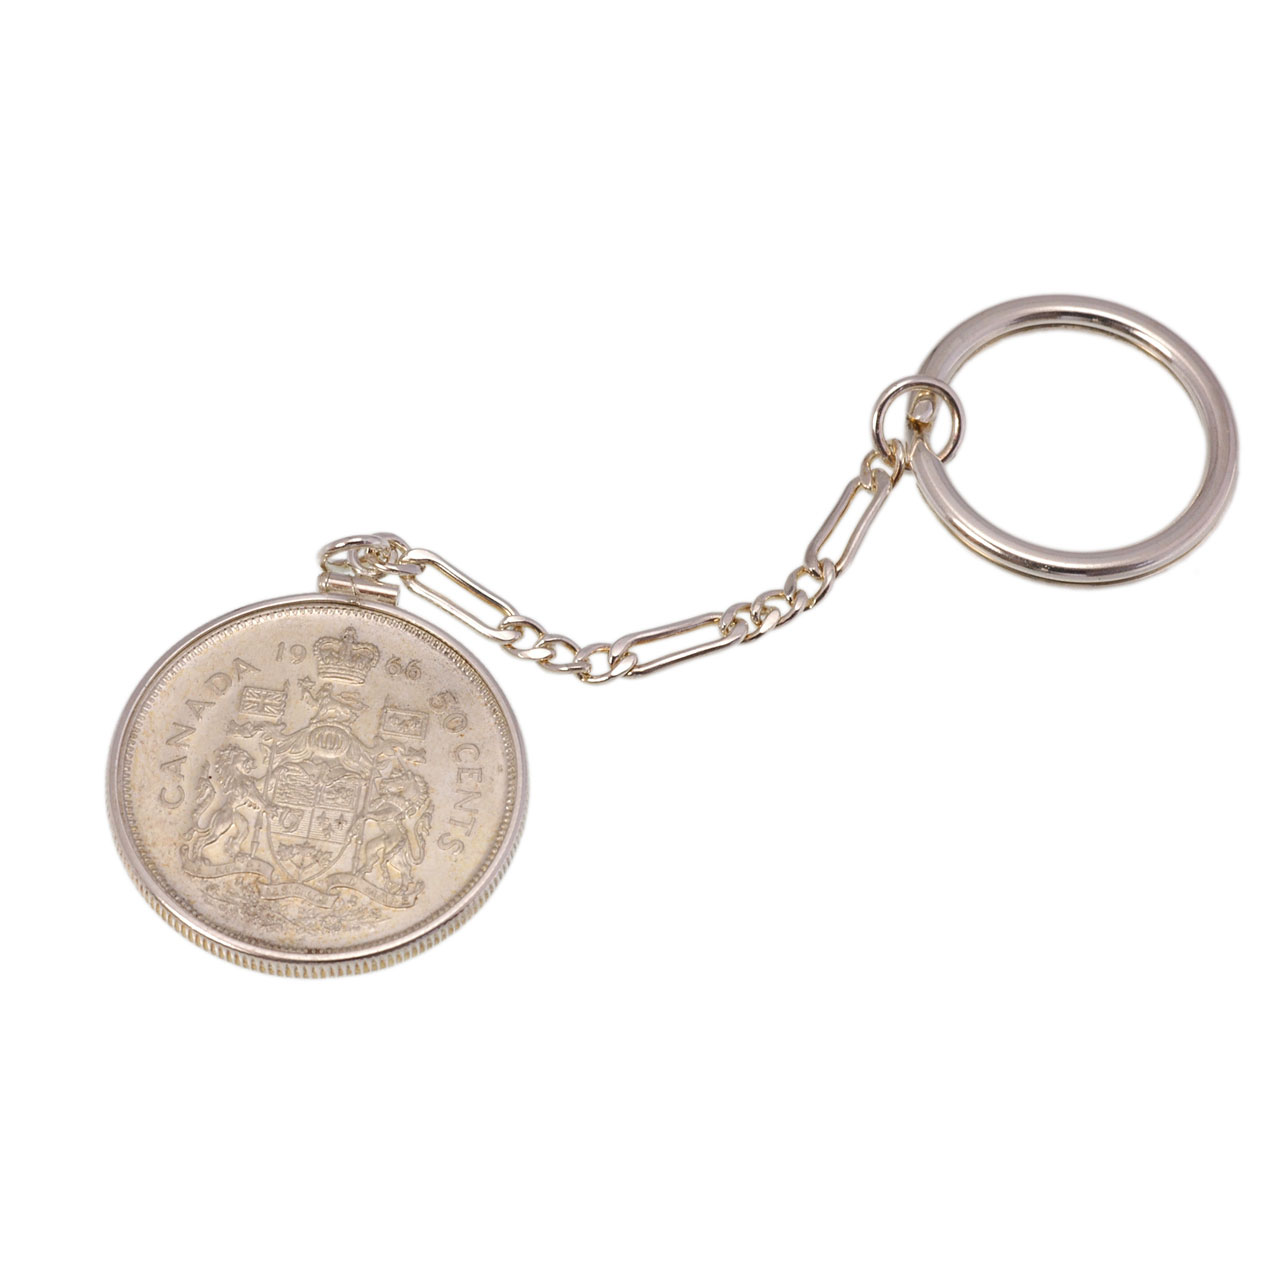 Key chain with Canadian silver coin 1